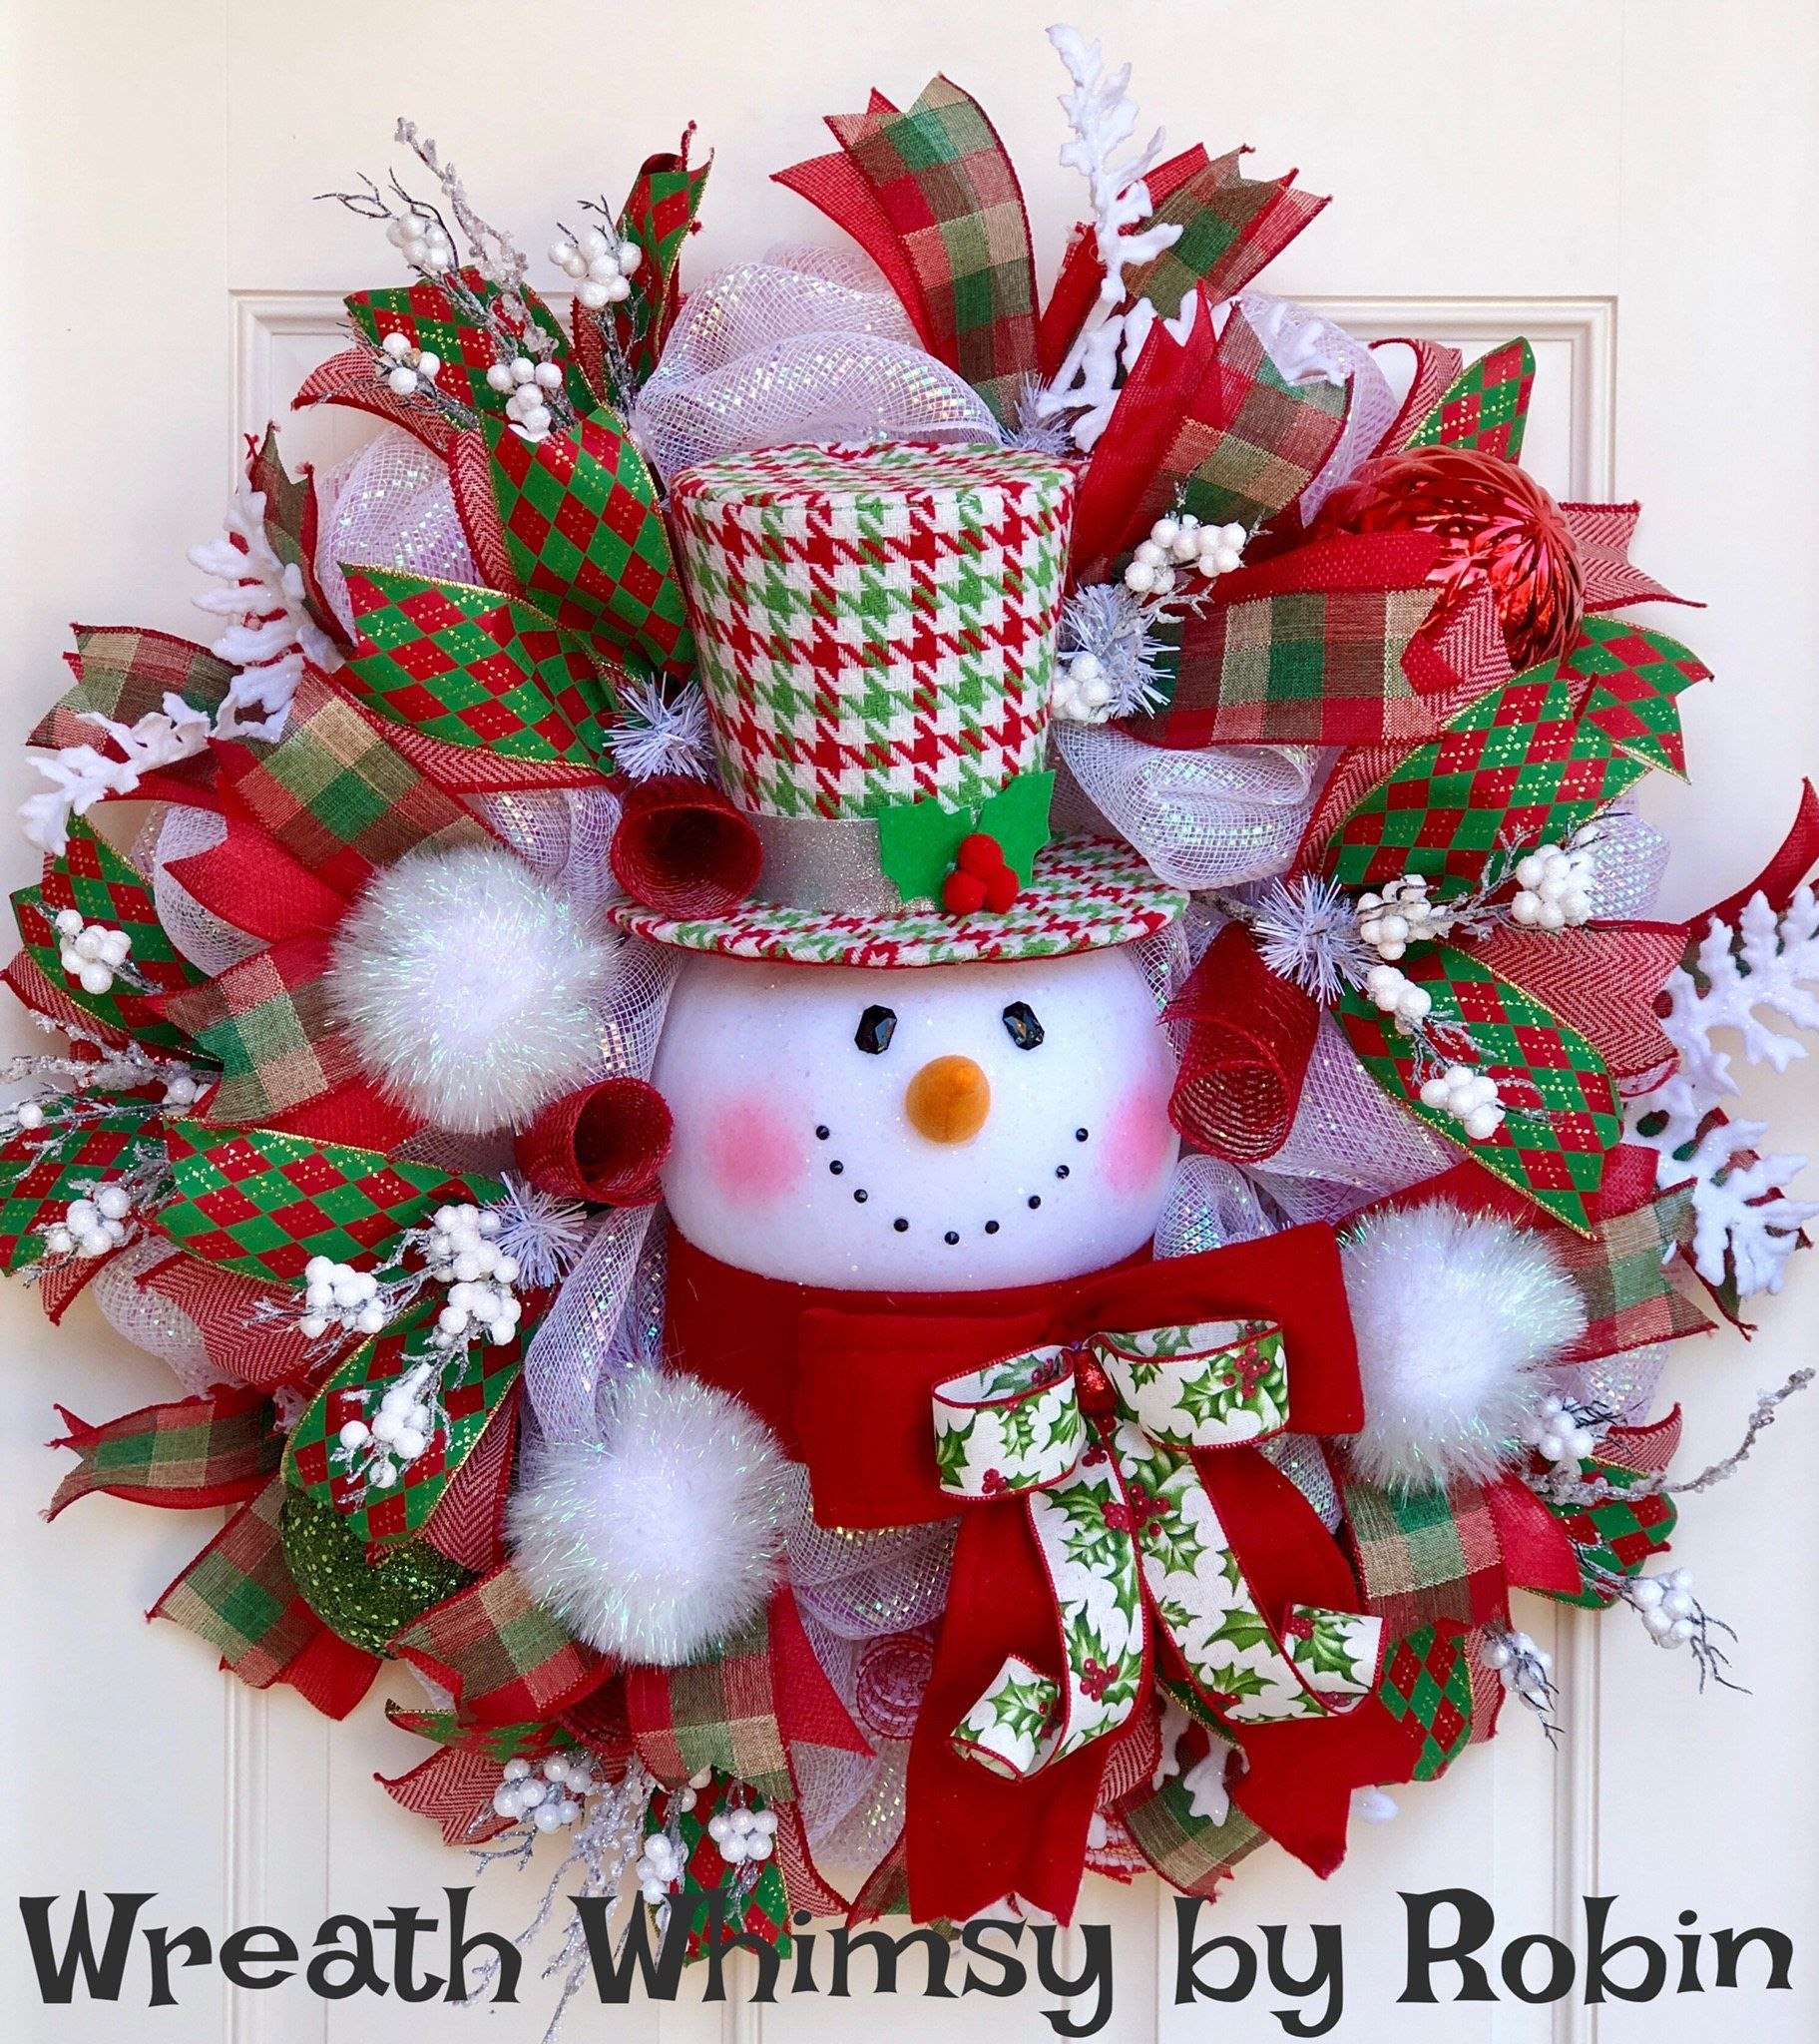 Oversized Deco Mesh Winter Snowman Wreath In Red White And Green Christmas Wreath Holiday Wreath Snowman Decor Xmas Decor Door Wreath Christmas Wreaths Holiday Wreaths Xmas Decorations